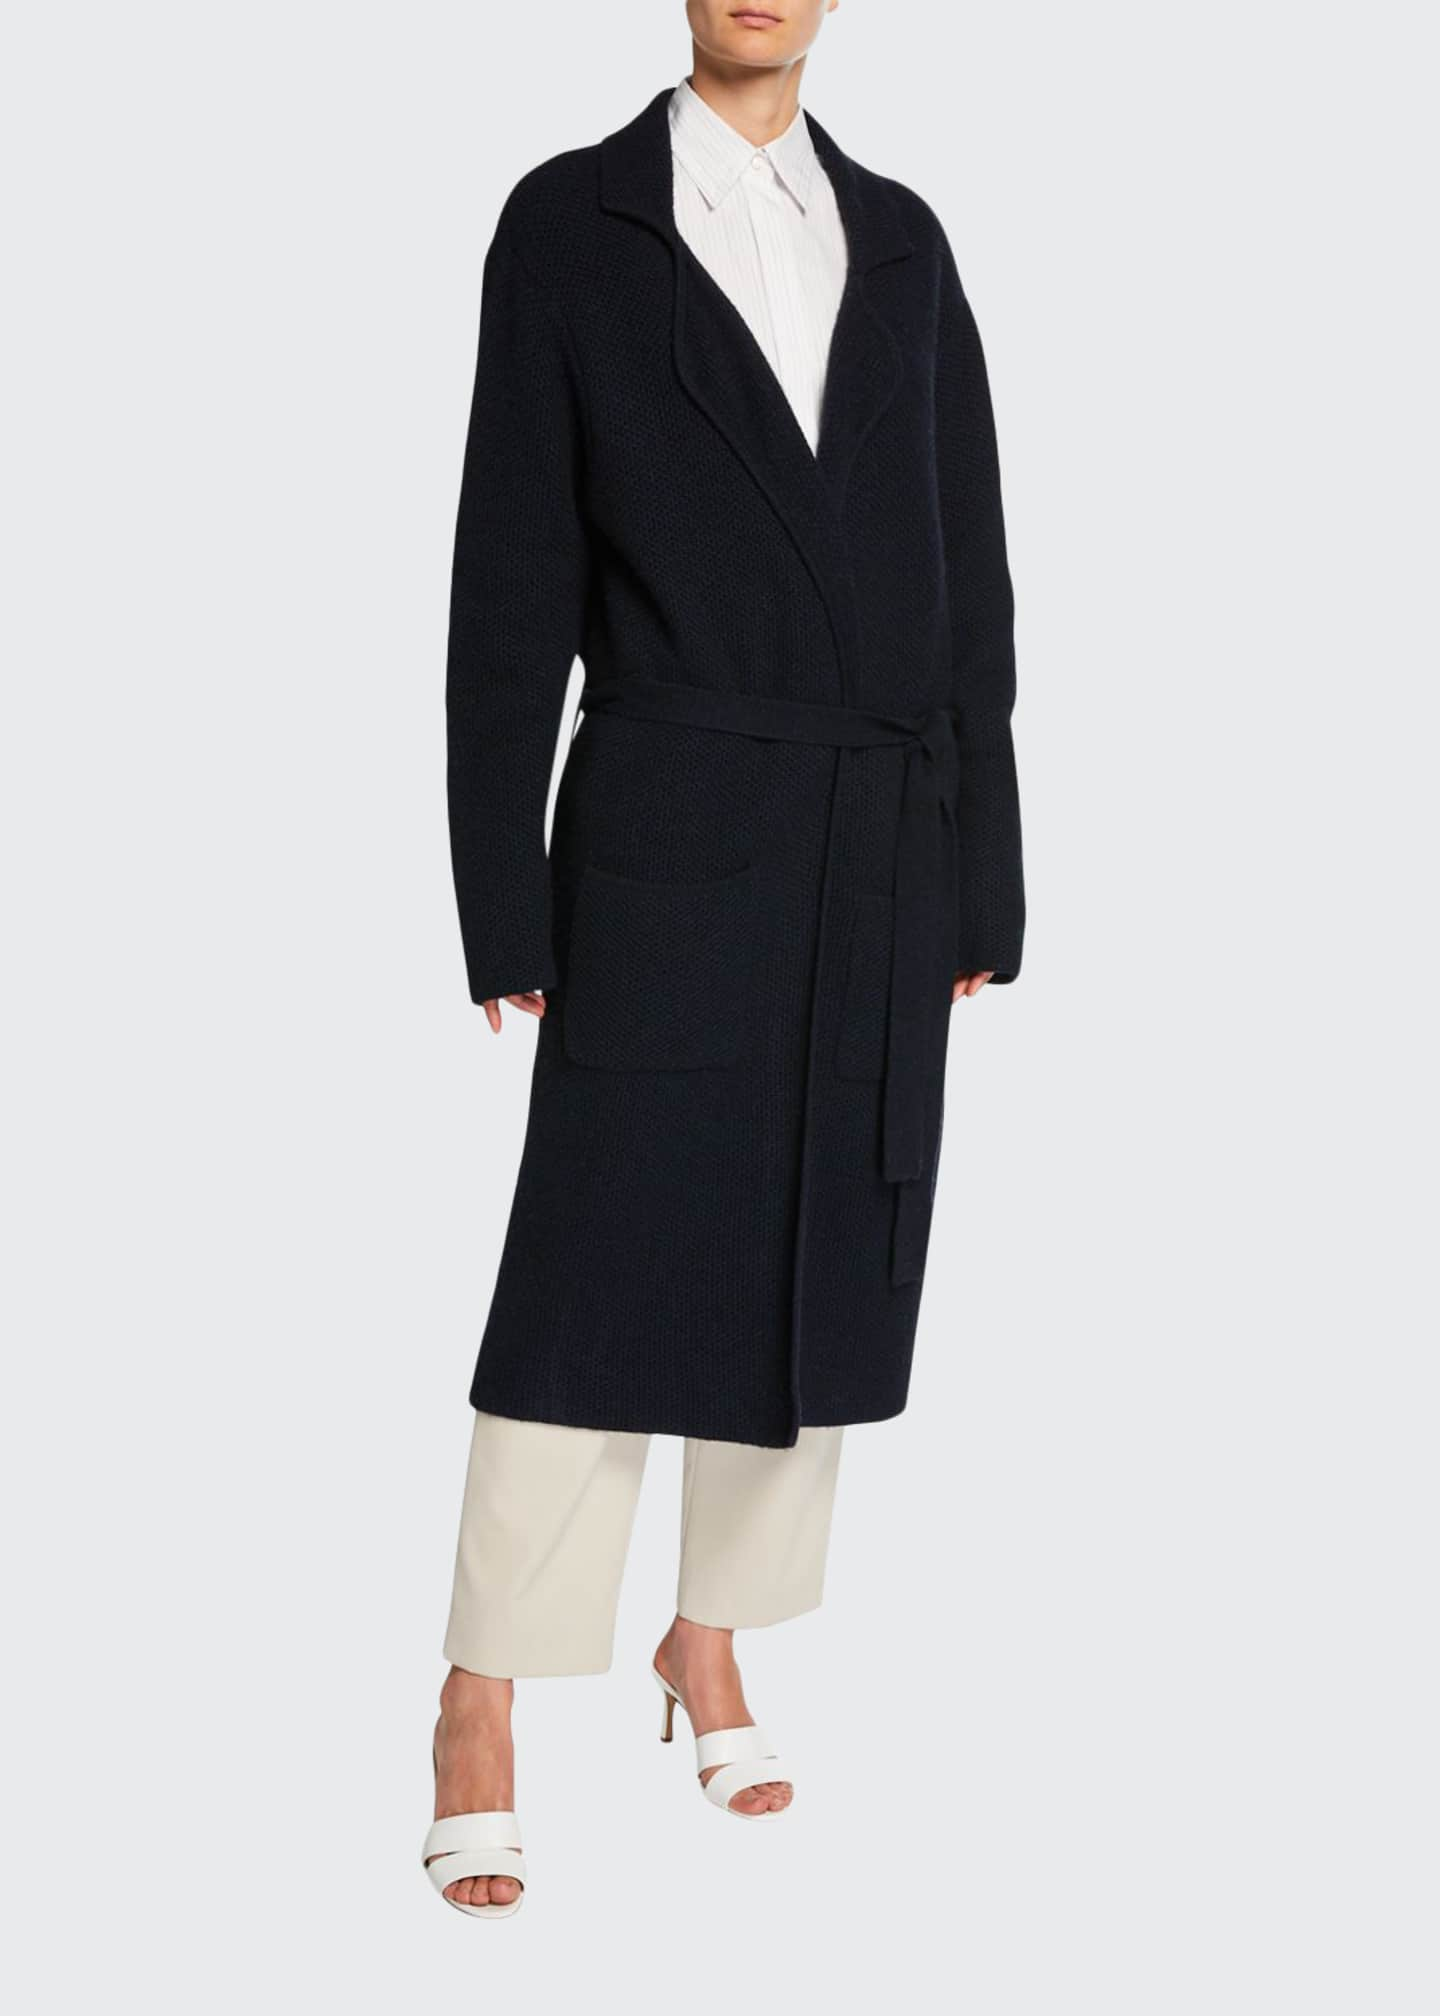 Deveaux New York Cashmere Belted Cardigan Coat